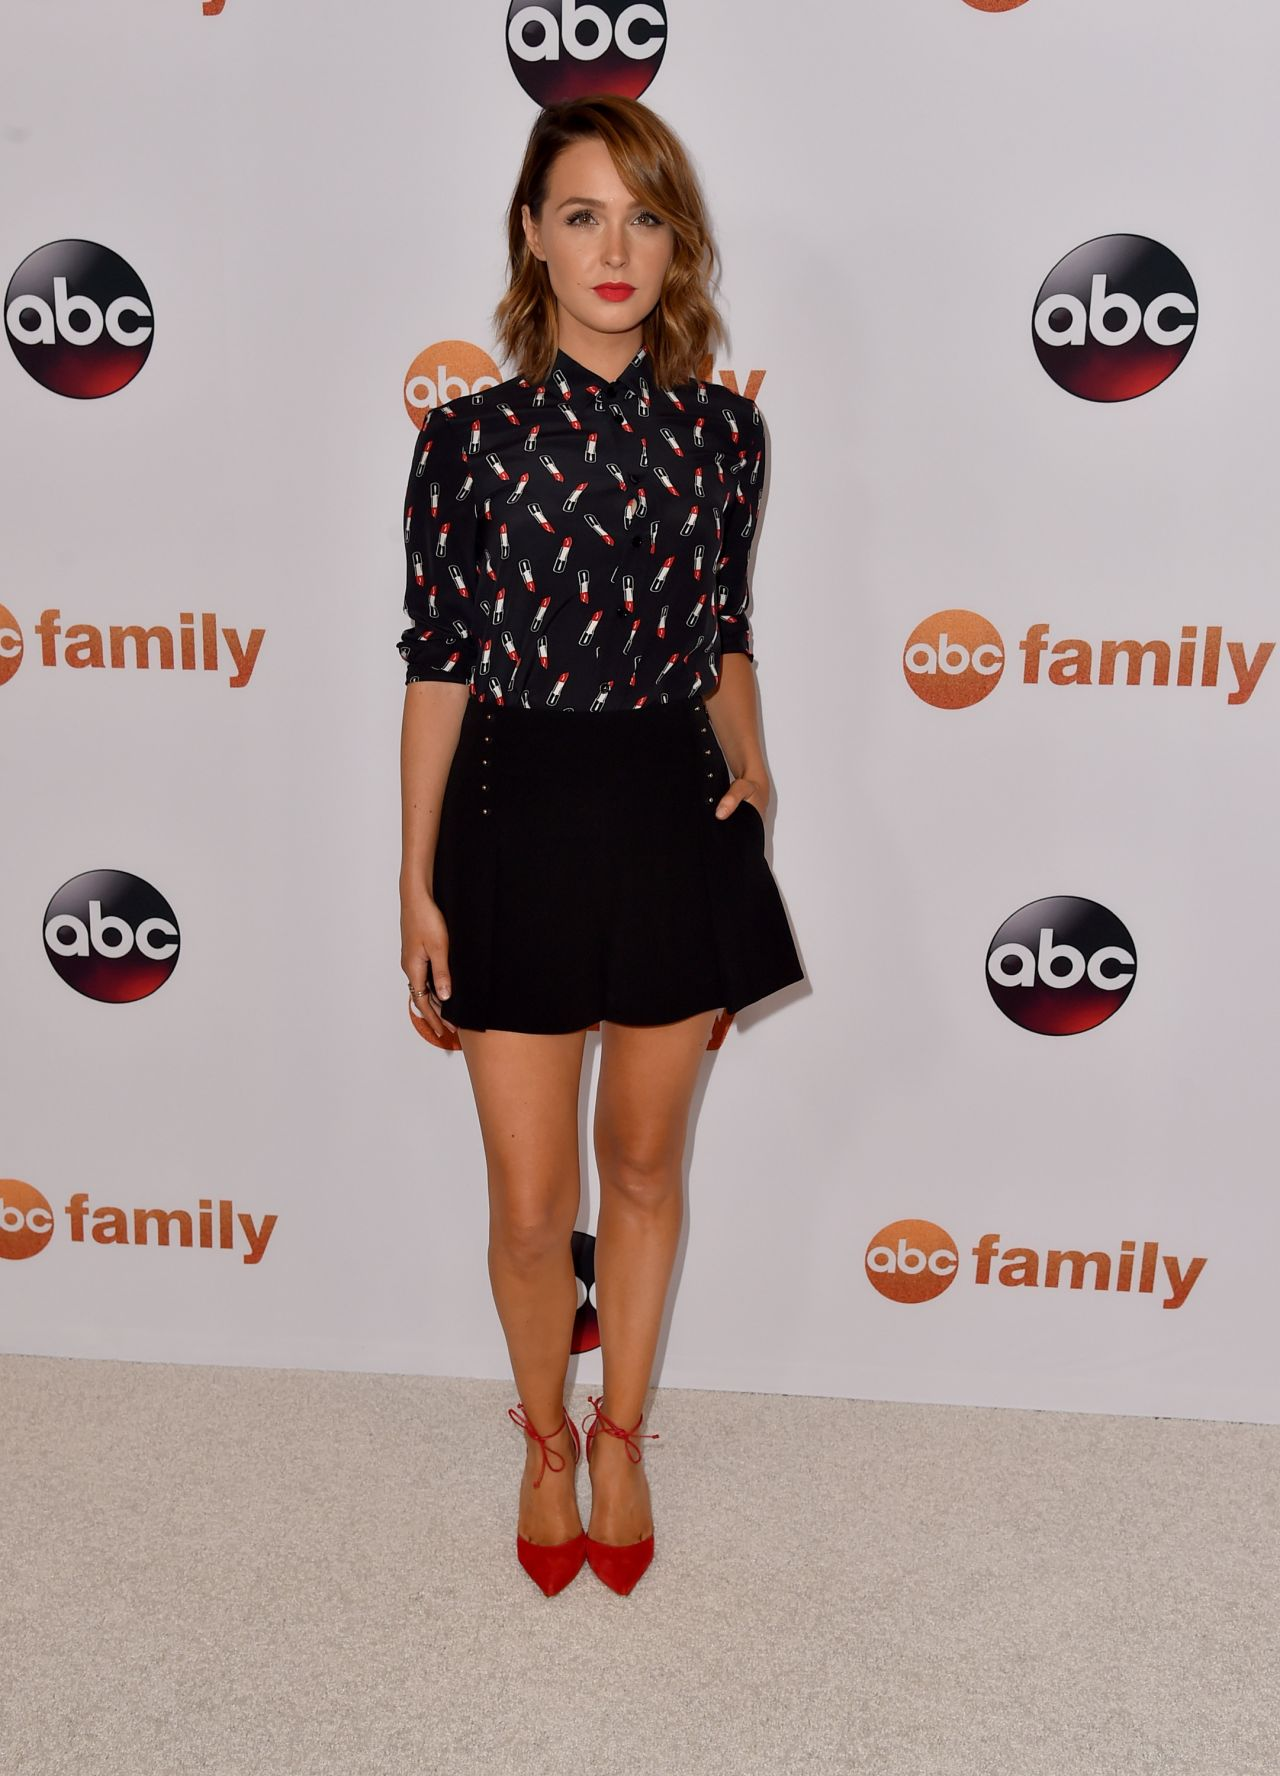 camilla-luddington-disney-abc-2015-summer-tca-press-tour-photo-call-in-beverly-hills_2